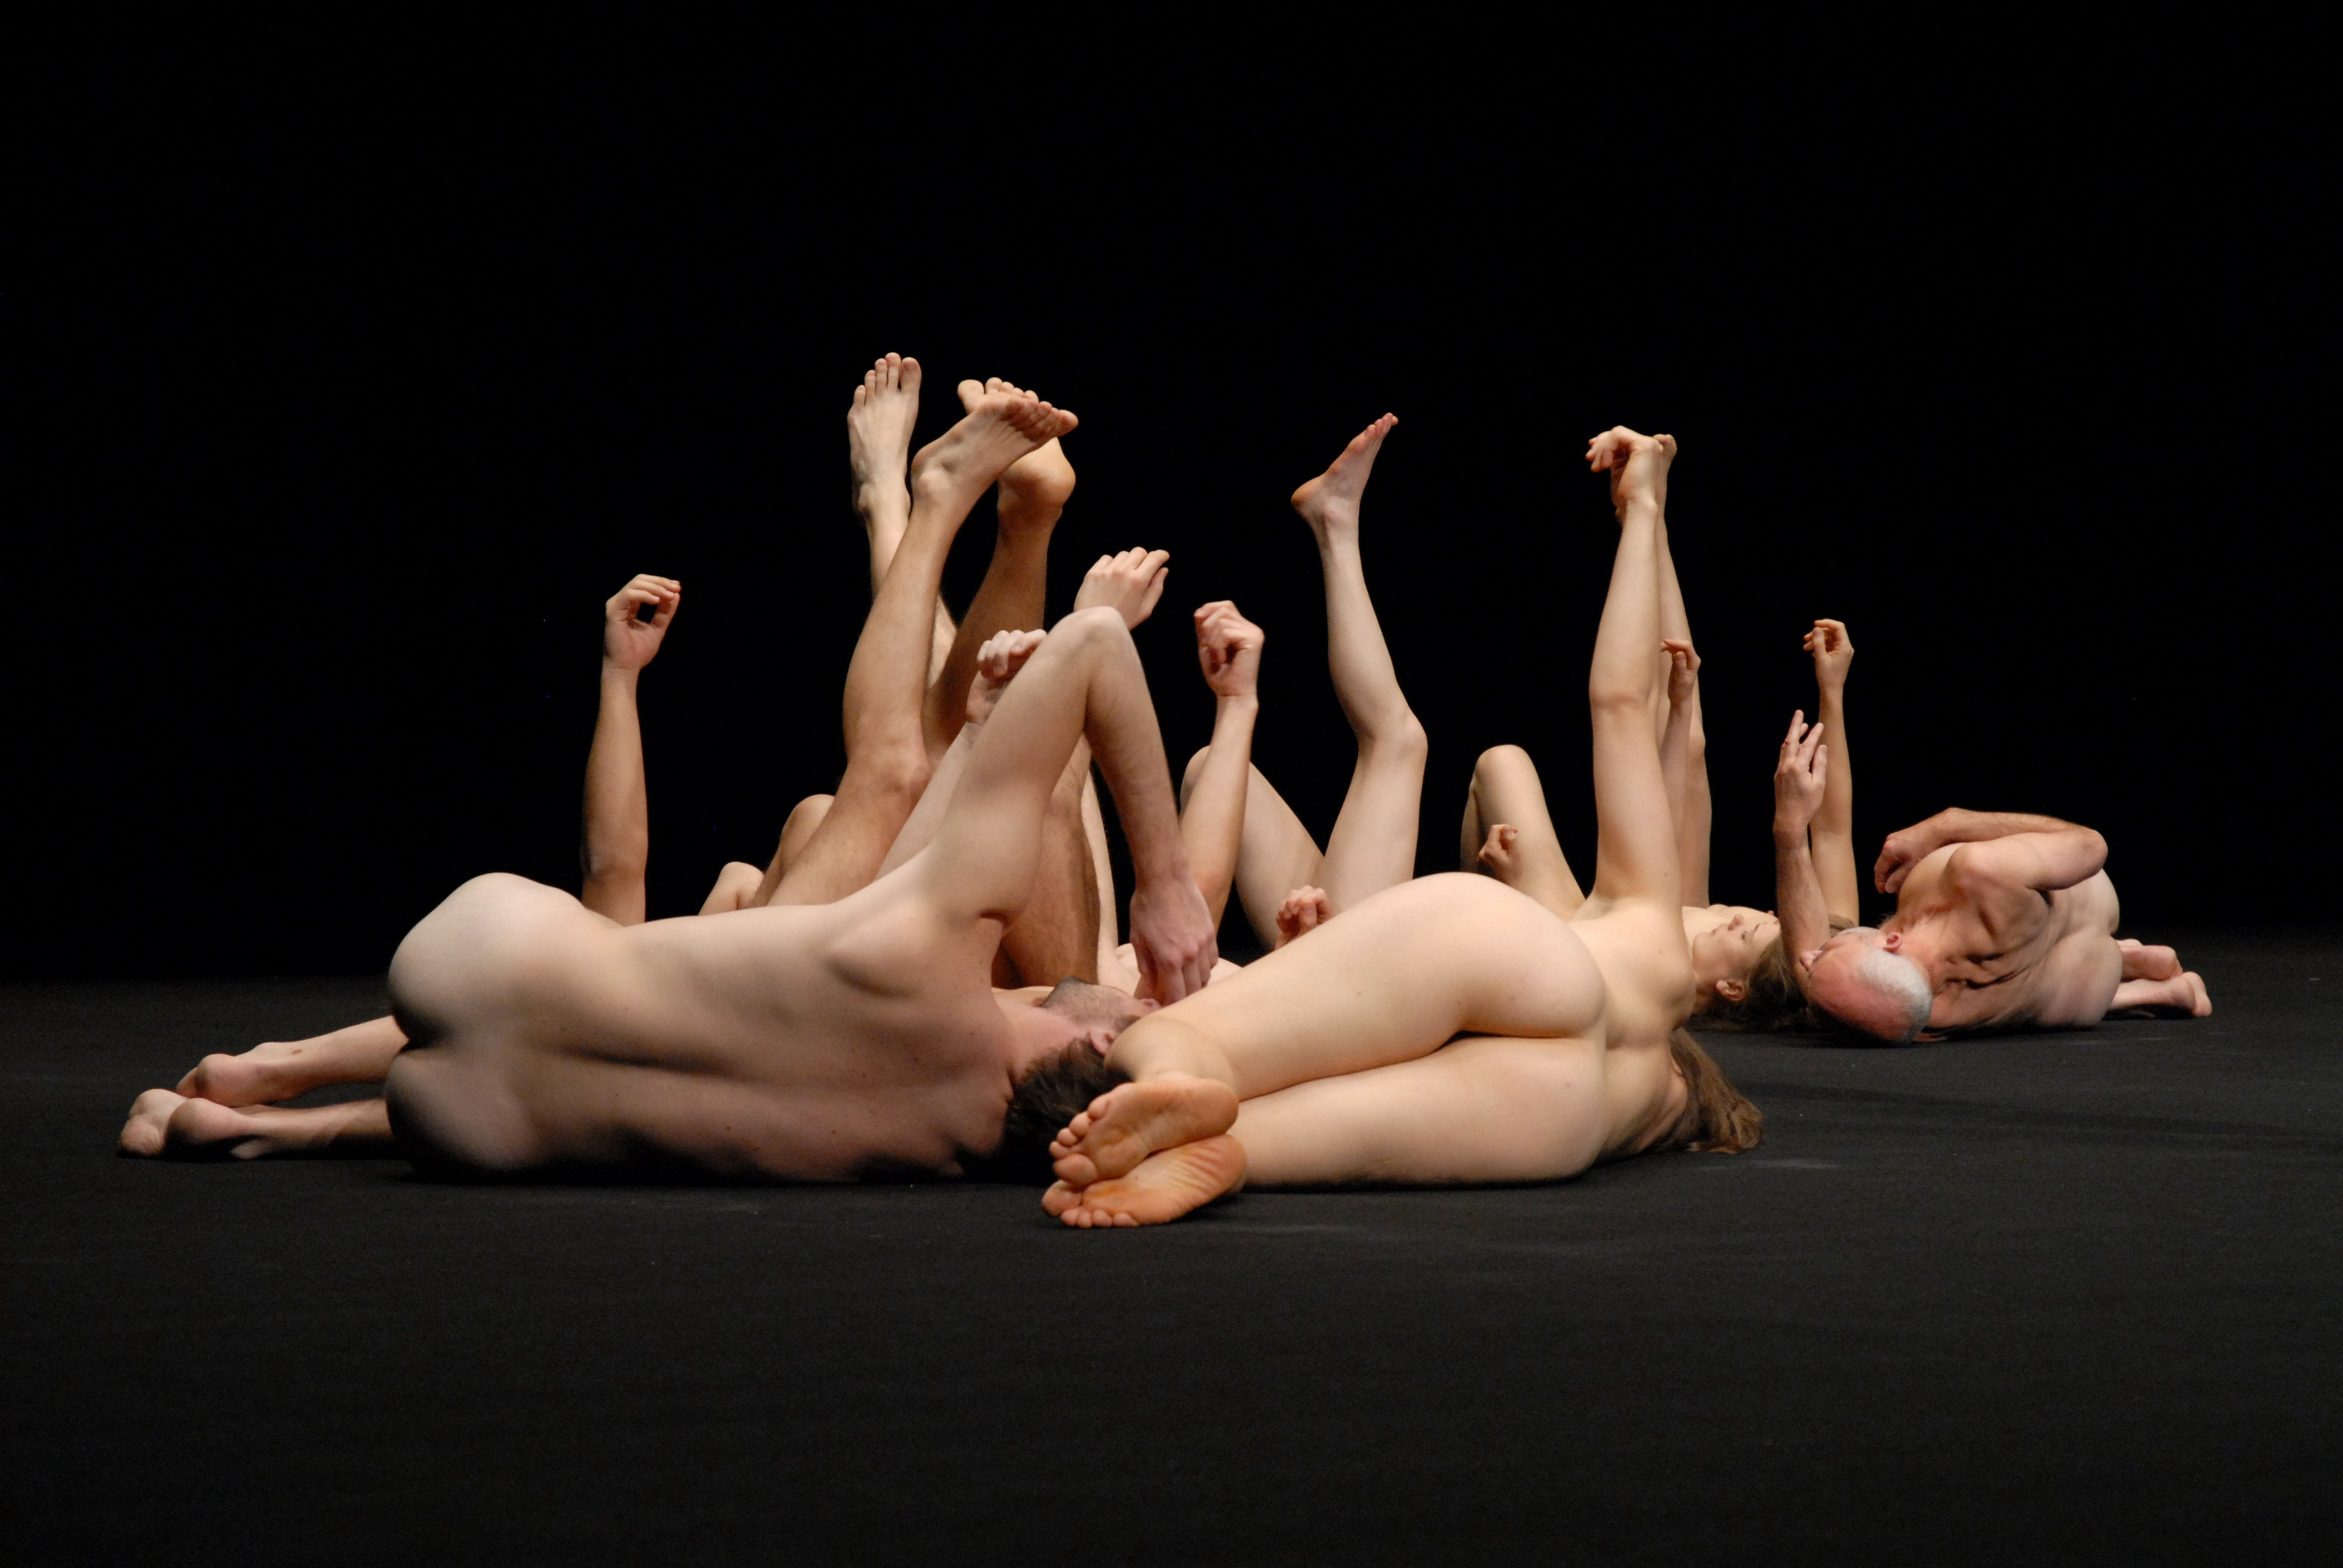 Polish nude theater pictures